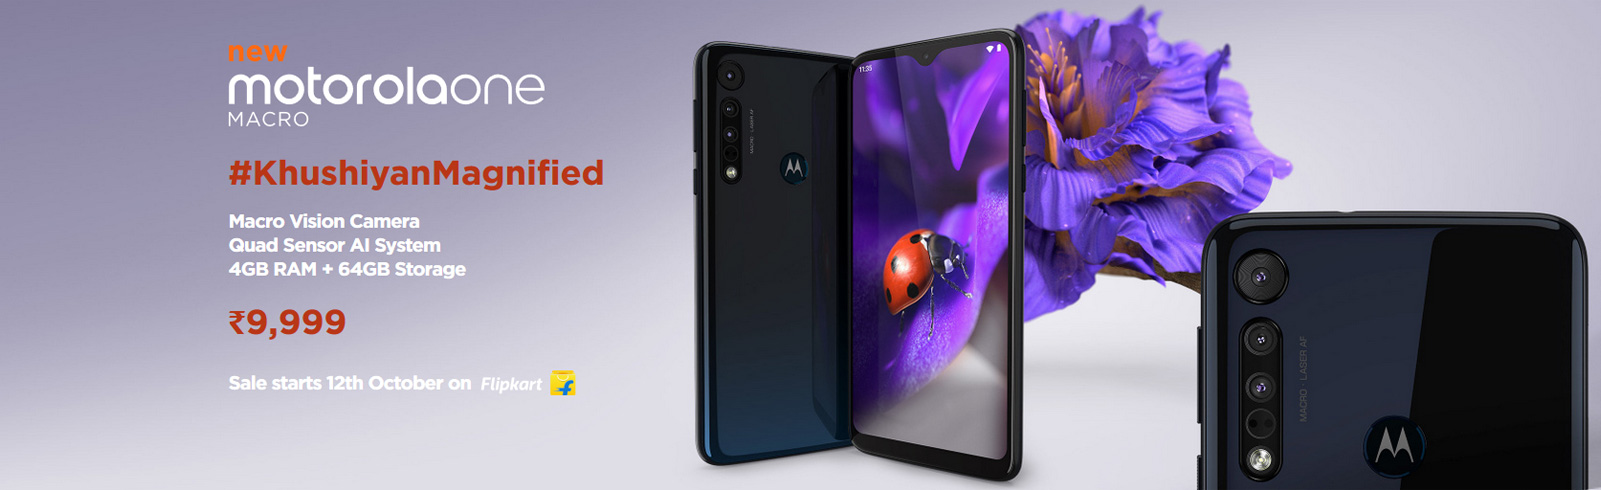 Motorola One Macro with a dedicated Macro Vision camera is announced